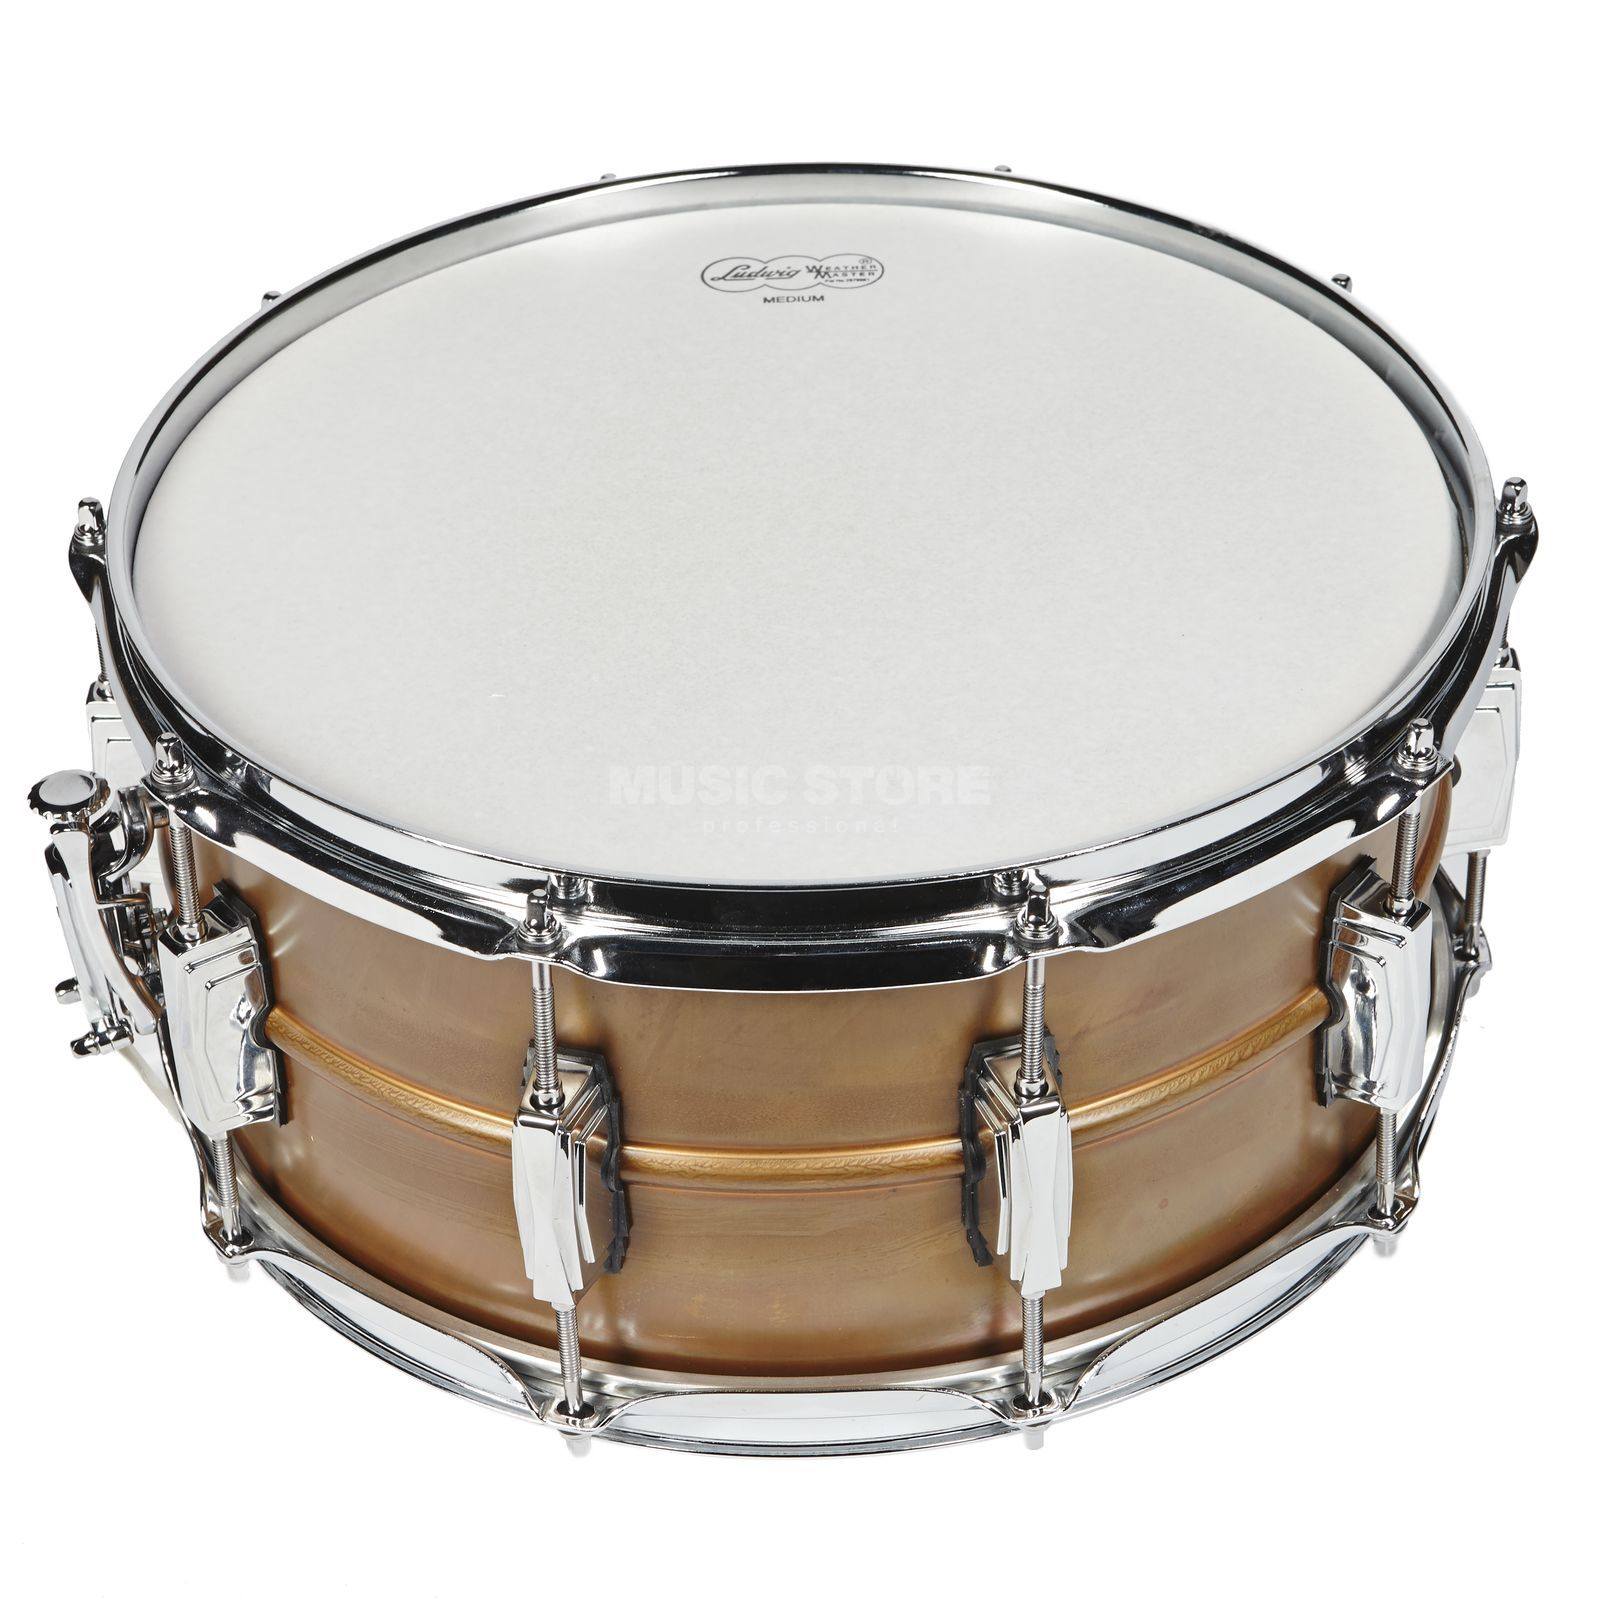 "Ludwig Copper Phonic Snare LC663, 14""x6,5"", Raw Patina Copper Produktbild"